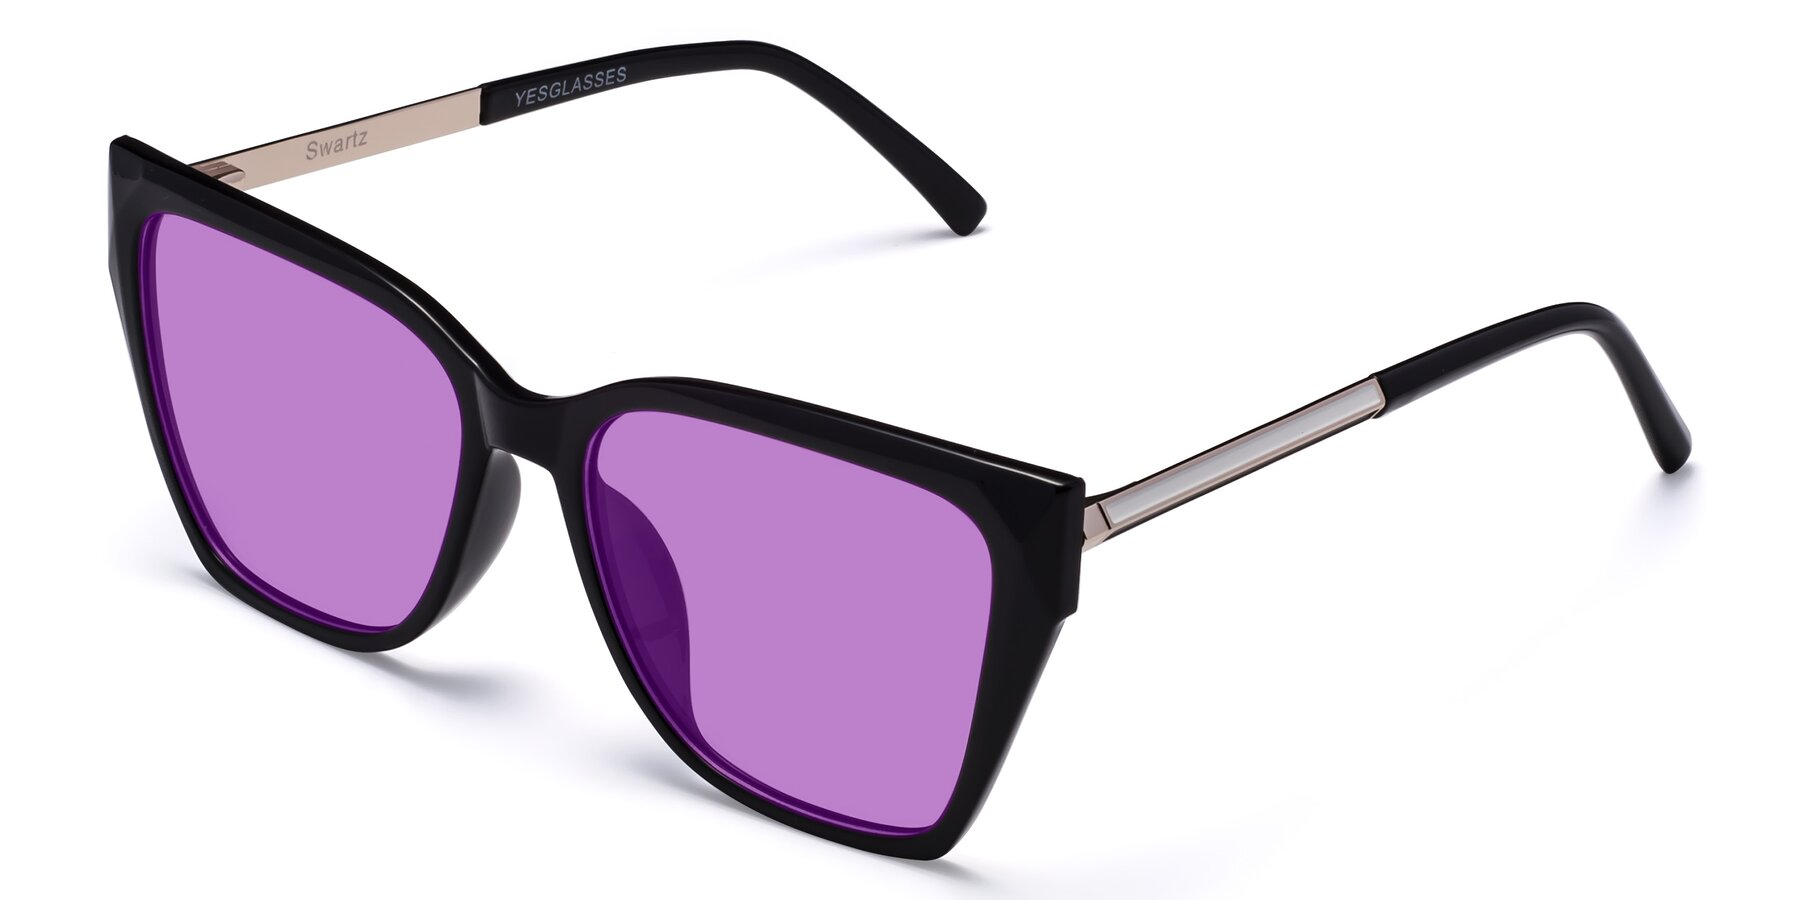 Angle of Swartz in Black with Medium Purple Tinted Lenses